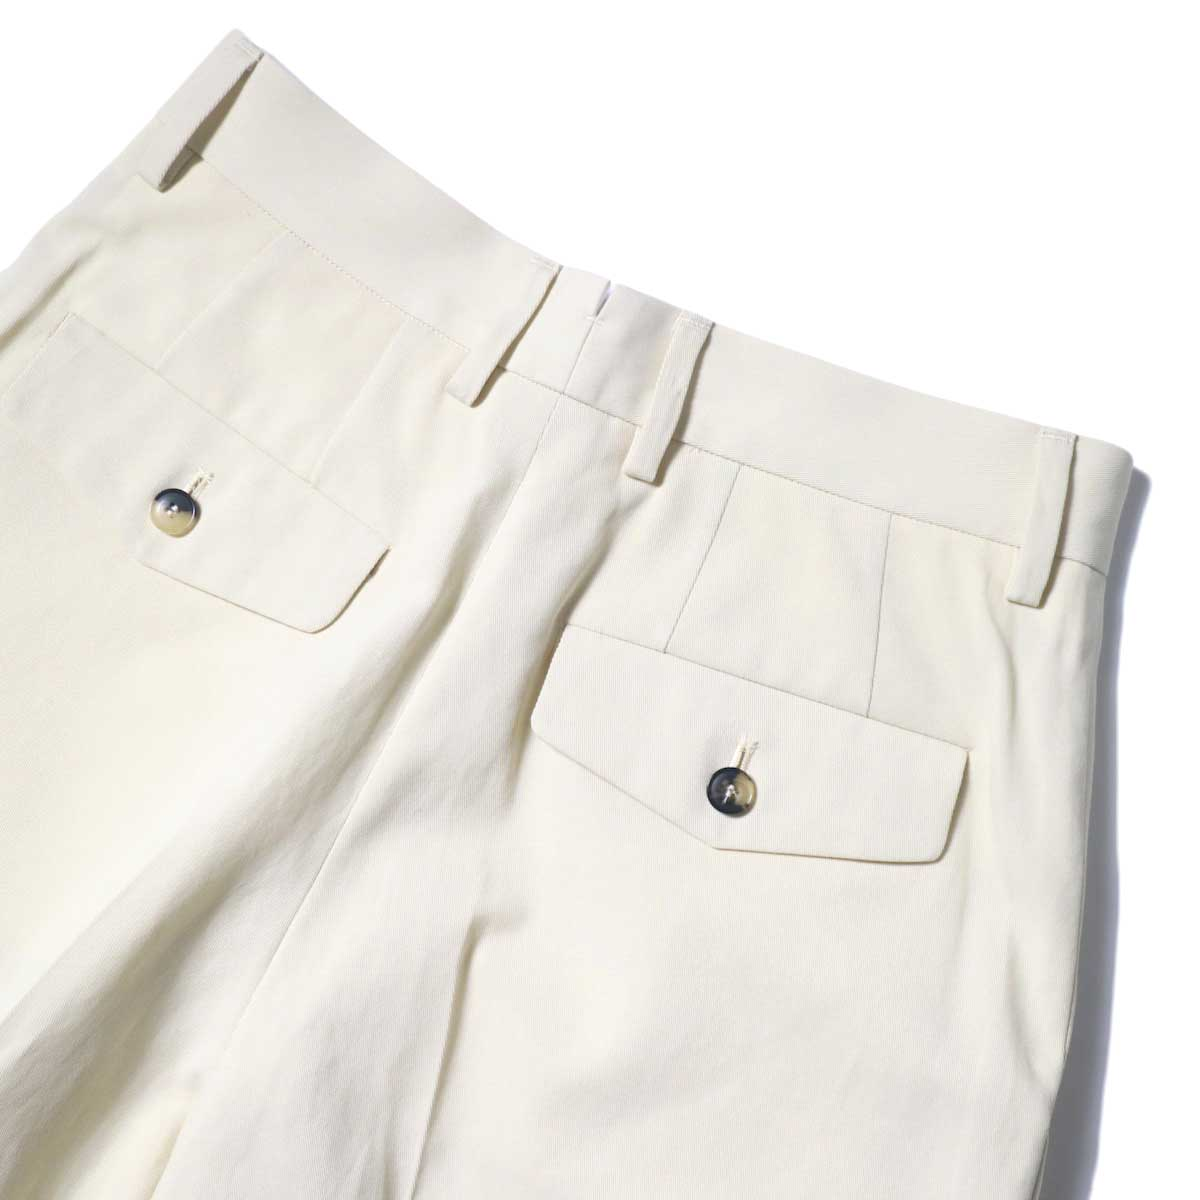 YLEVE / HIGH COUNT COTTON KERSEY SHORTS (Straw Beige) ウエスト背面